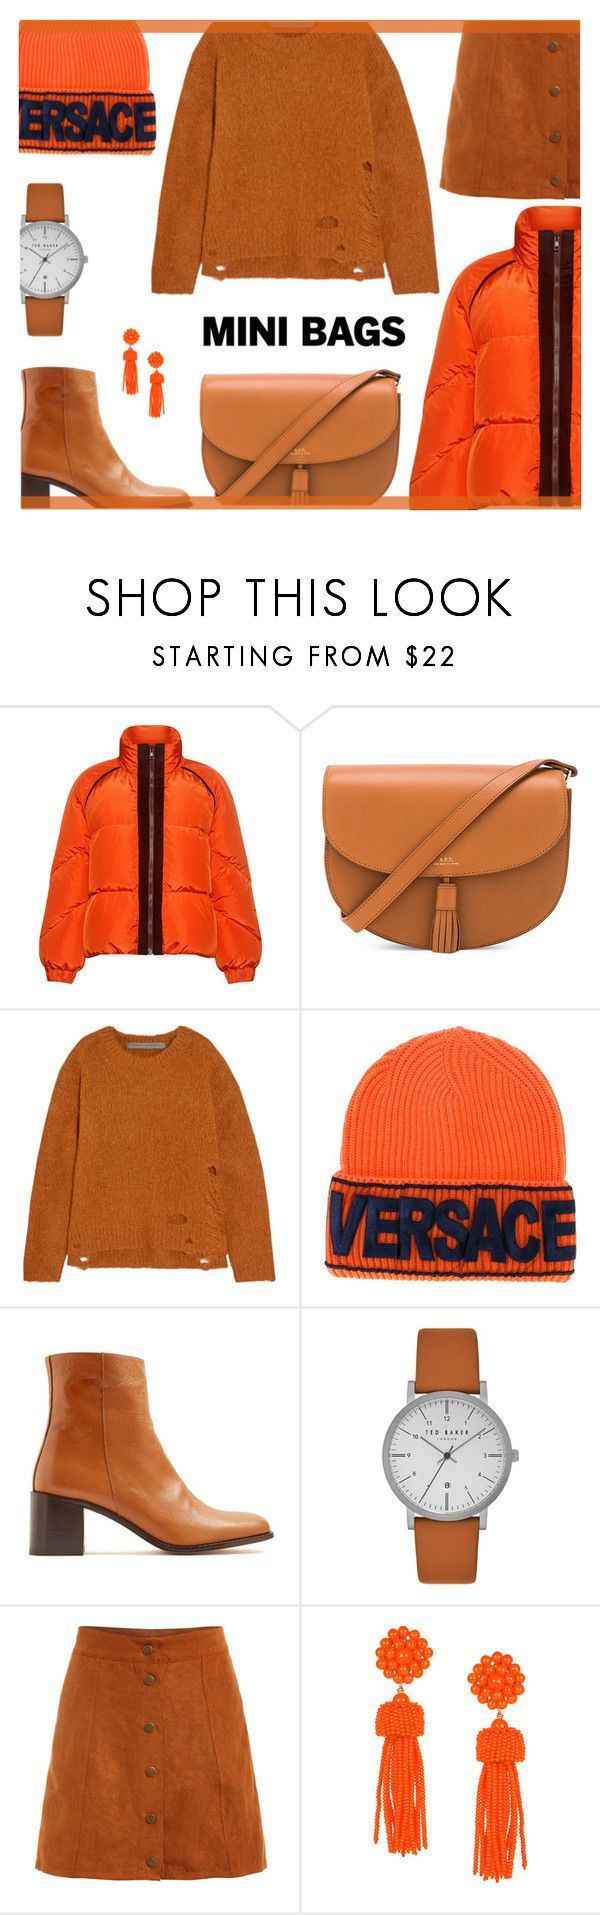 """""""So Cute: Mini Bag"""" by rasa-j ❤ liked on Polyvore featuring Ganni, A.P.C., Raquel Allegra, Versace, Maryam Nassir Zadeh, Ted Baker, womensFashion and minibags"""